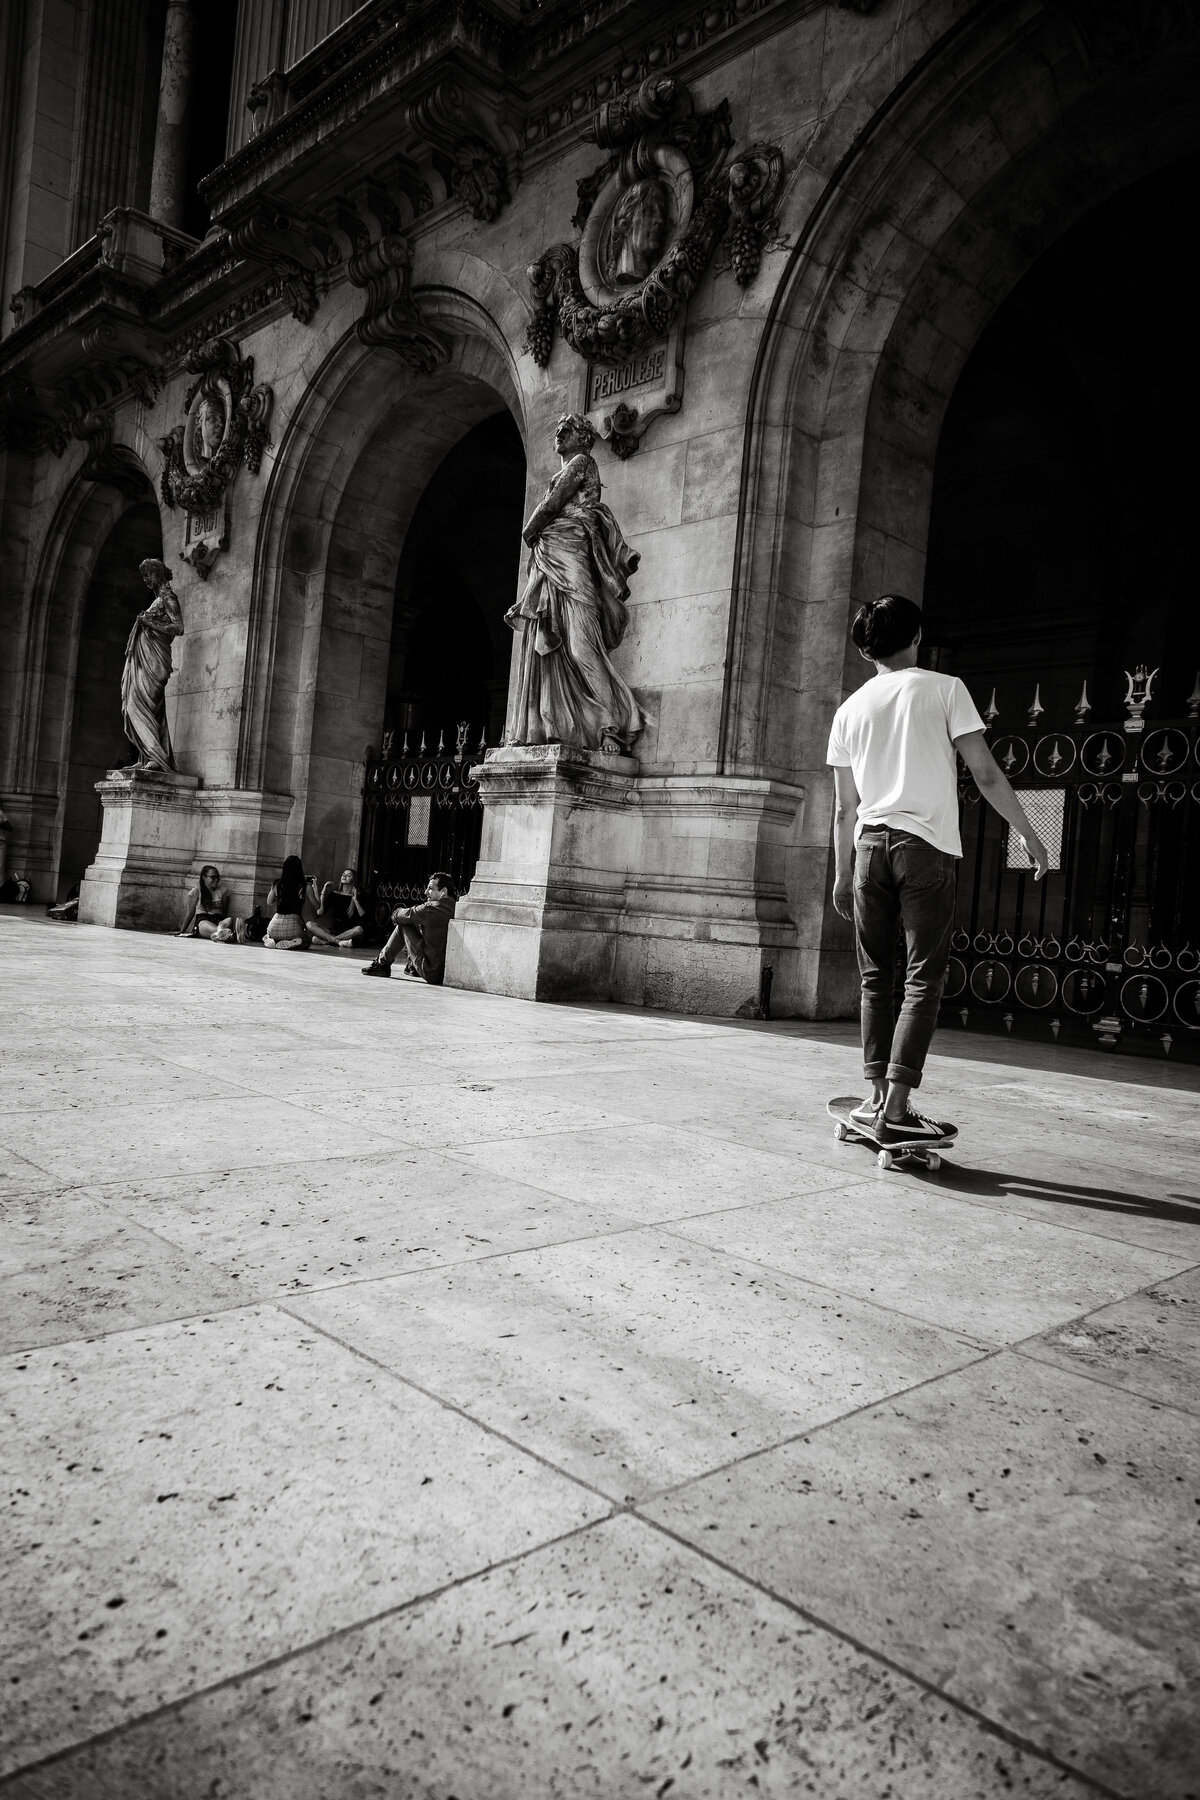 Streets of Paris BW 94